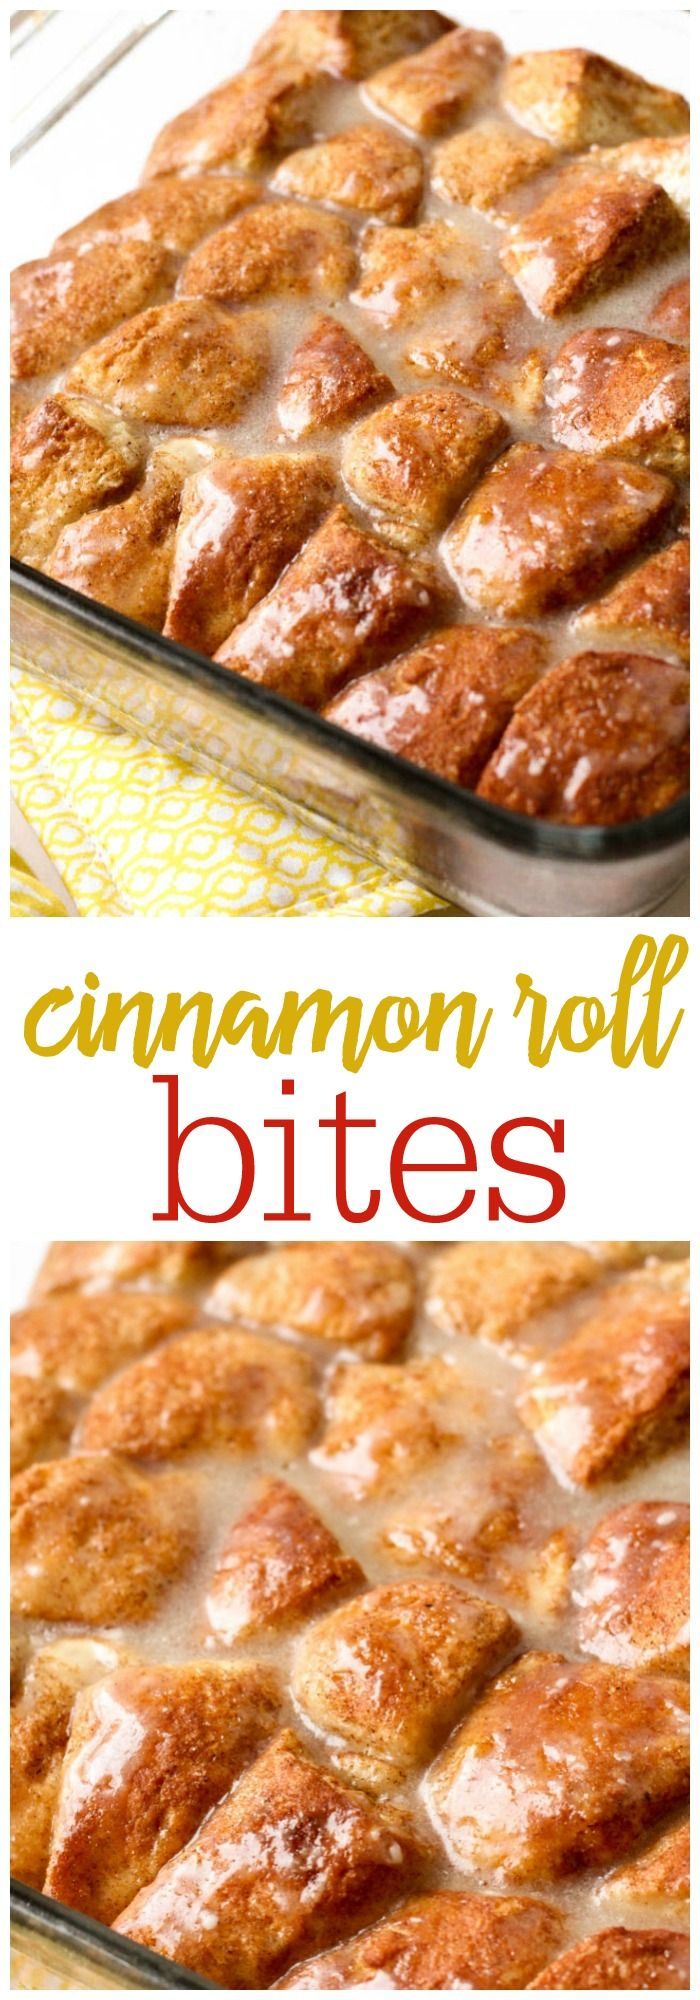 Super simple and delicious Cinnamon Roll Bites - so good { lilluna.com } Recipe includes refrigerated biscuits, butter, cinnamon, & sugar with a yummy glaze!